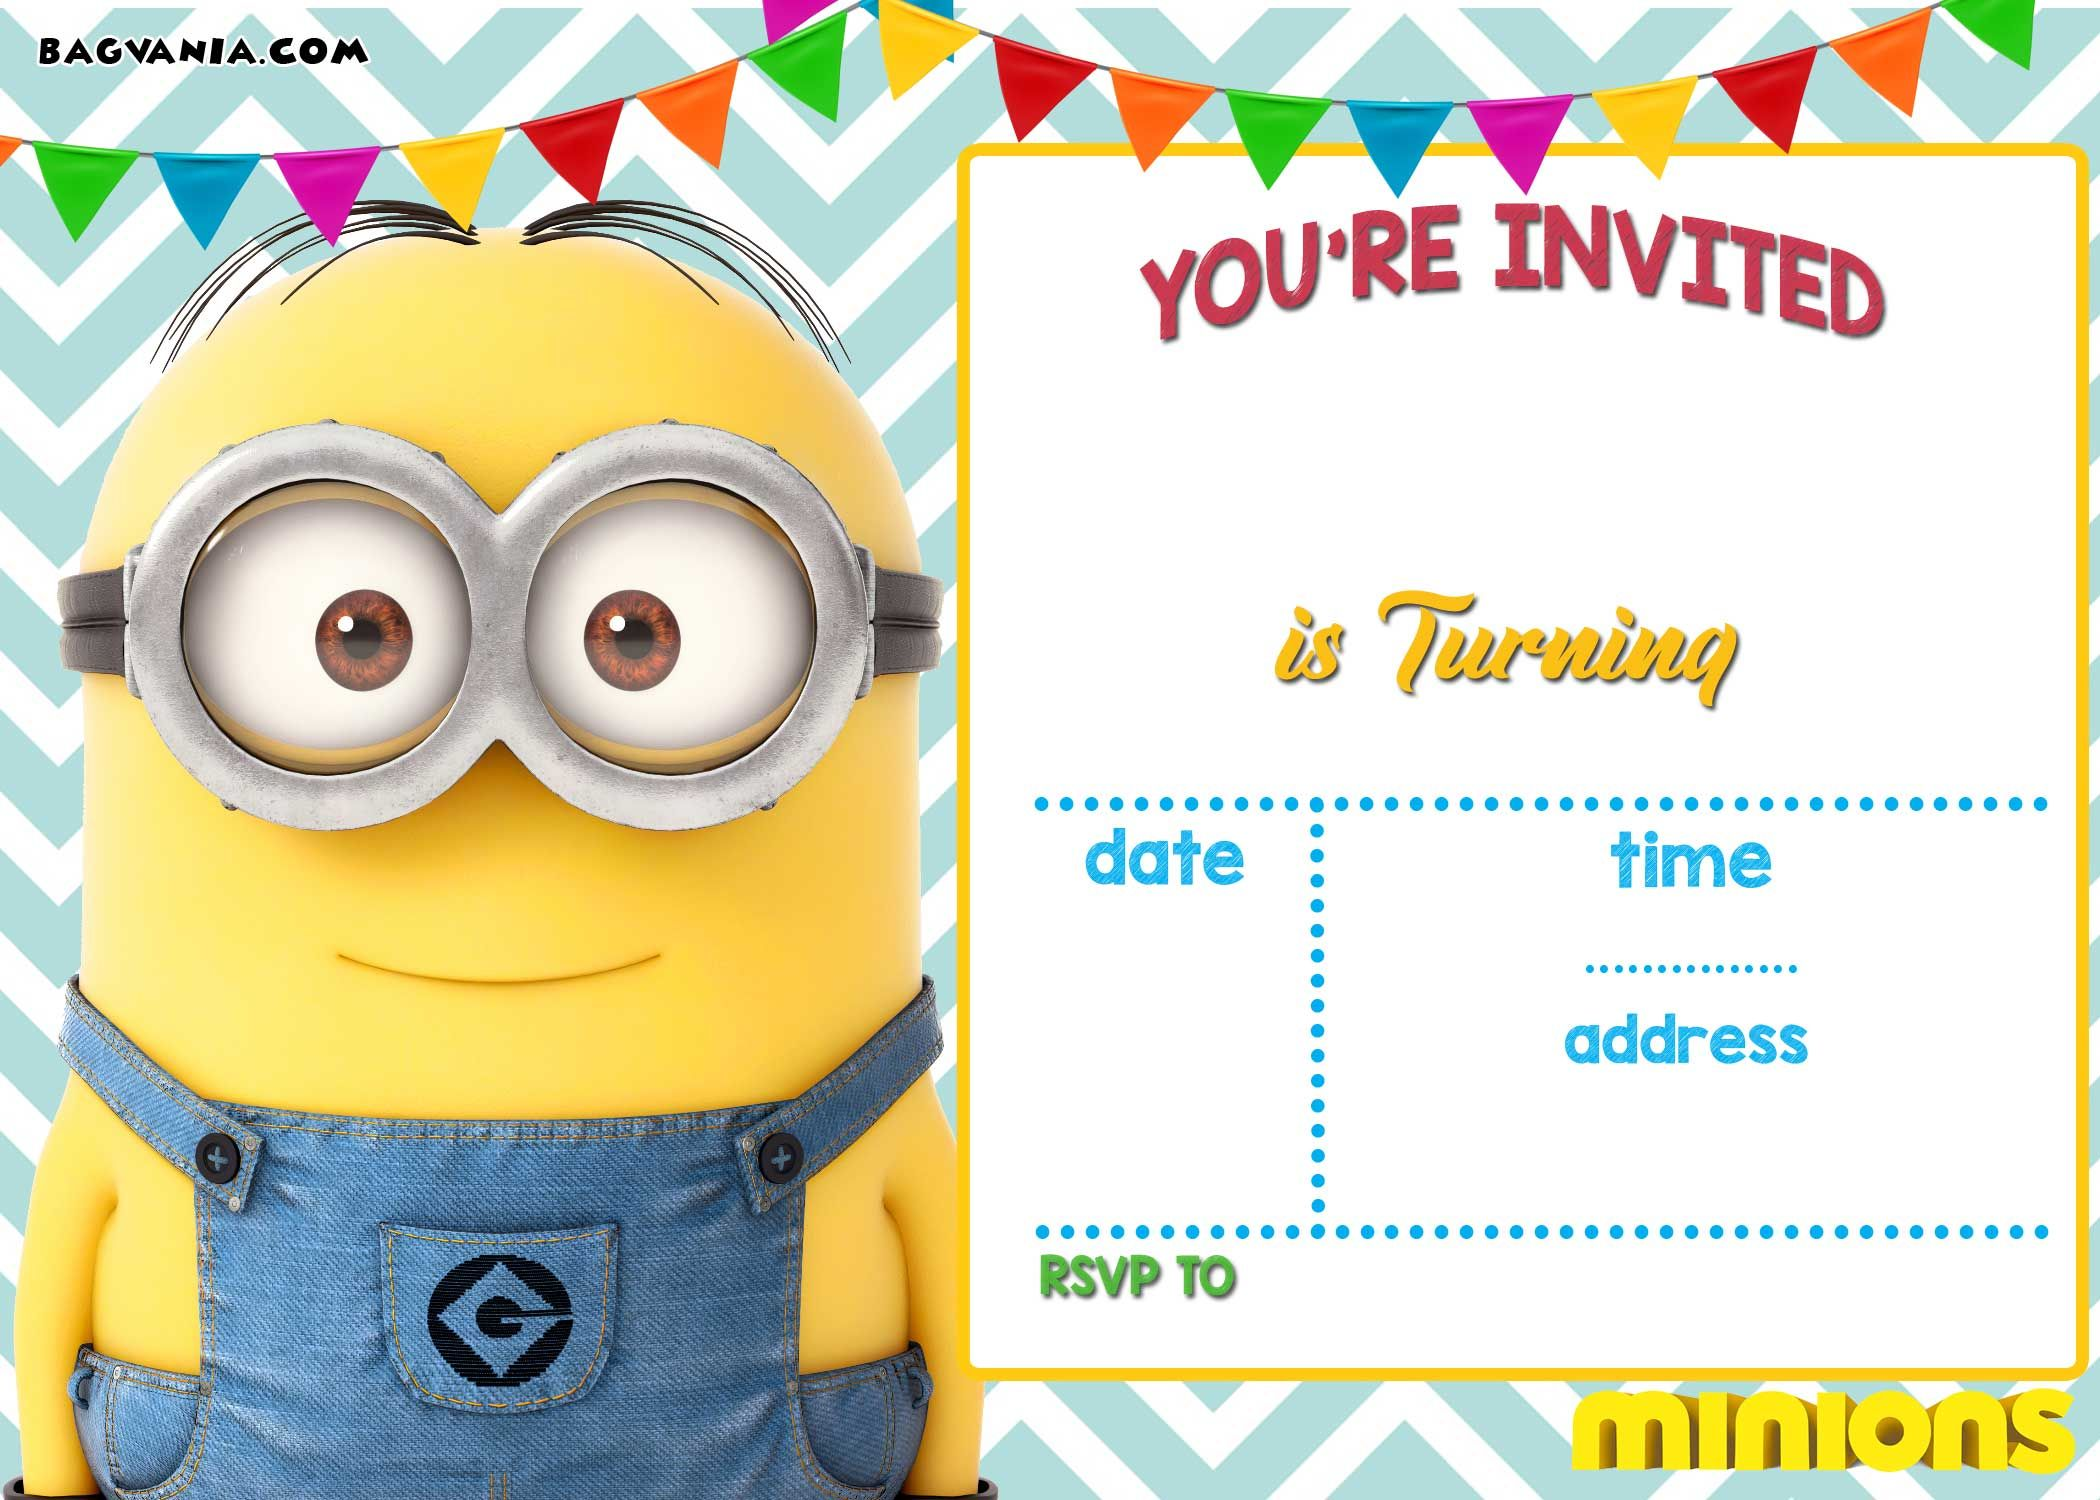 Divine image with regard to minions printable invitations